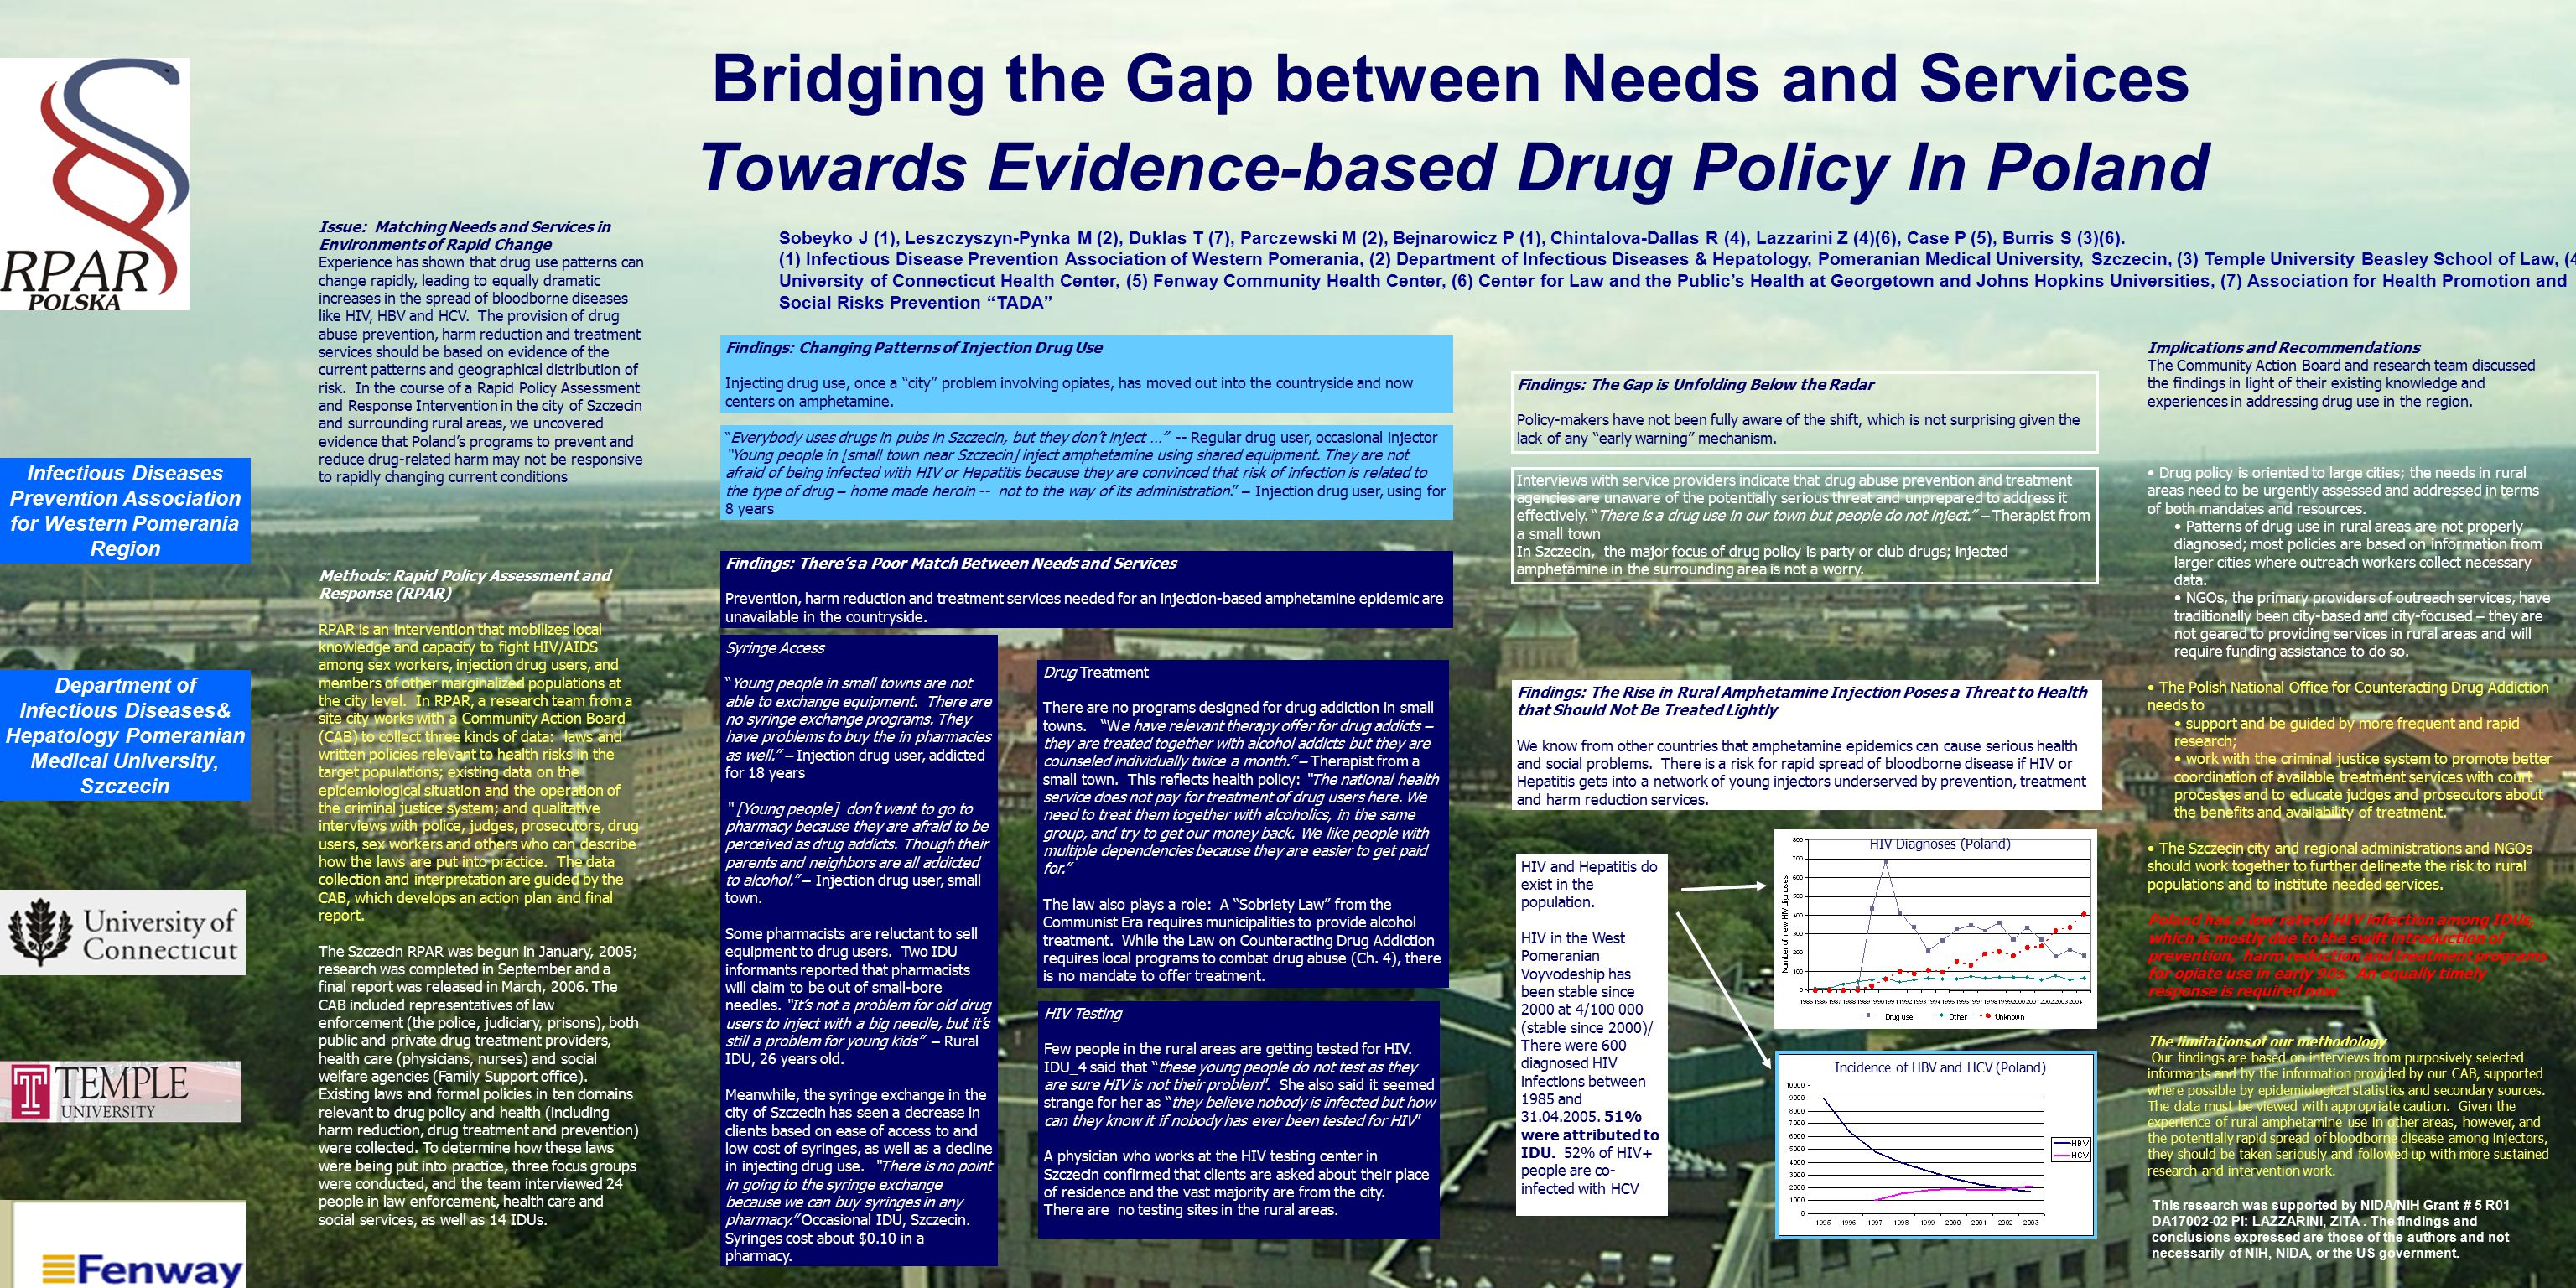 Bridging the Gap between Needs and Services Towards Evidence-based Drug Policy In Poland Issue: Matching Needs and Services in Environments of Rapid Change Experience has shown that drug use patterns can change rapidly, leading to equally dramatic increases in the spread of bloodborne diseases like HIV, HBV and HCV.